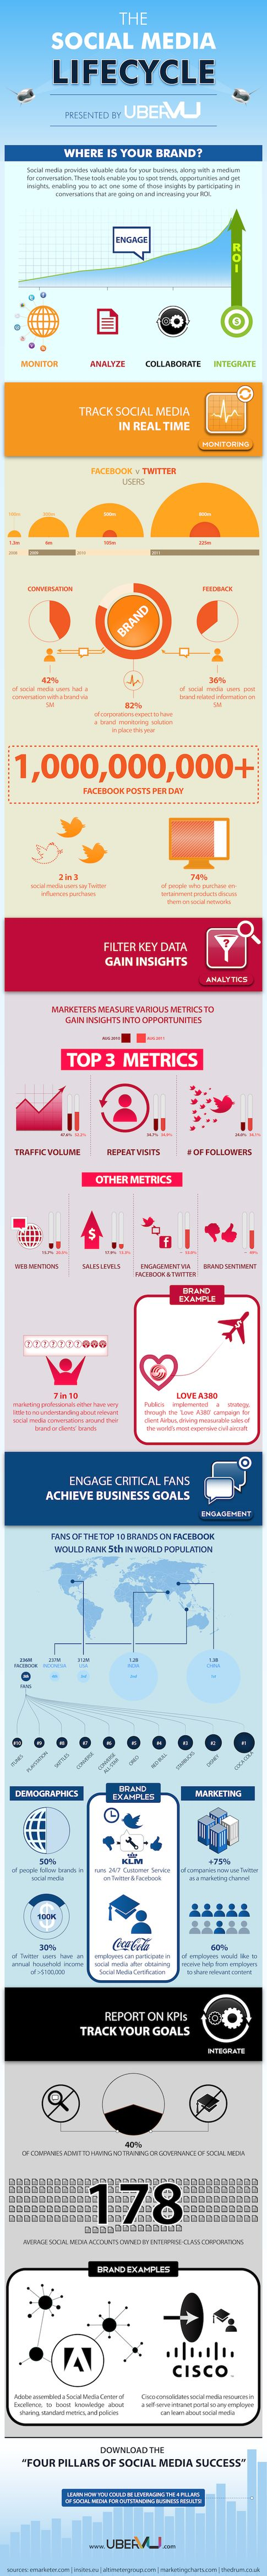 We love data and we love infographics. This infographic was creatd by UberVu and we love it. It has so much great data in it such as 2 out of 3 Twitter users claim Twitter inspired purchases. Another fascinating fact is that 70% of marketers have very little to no understanding of conversations